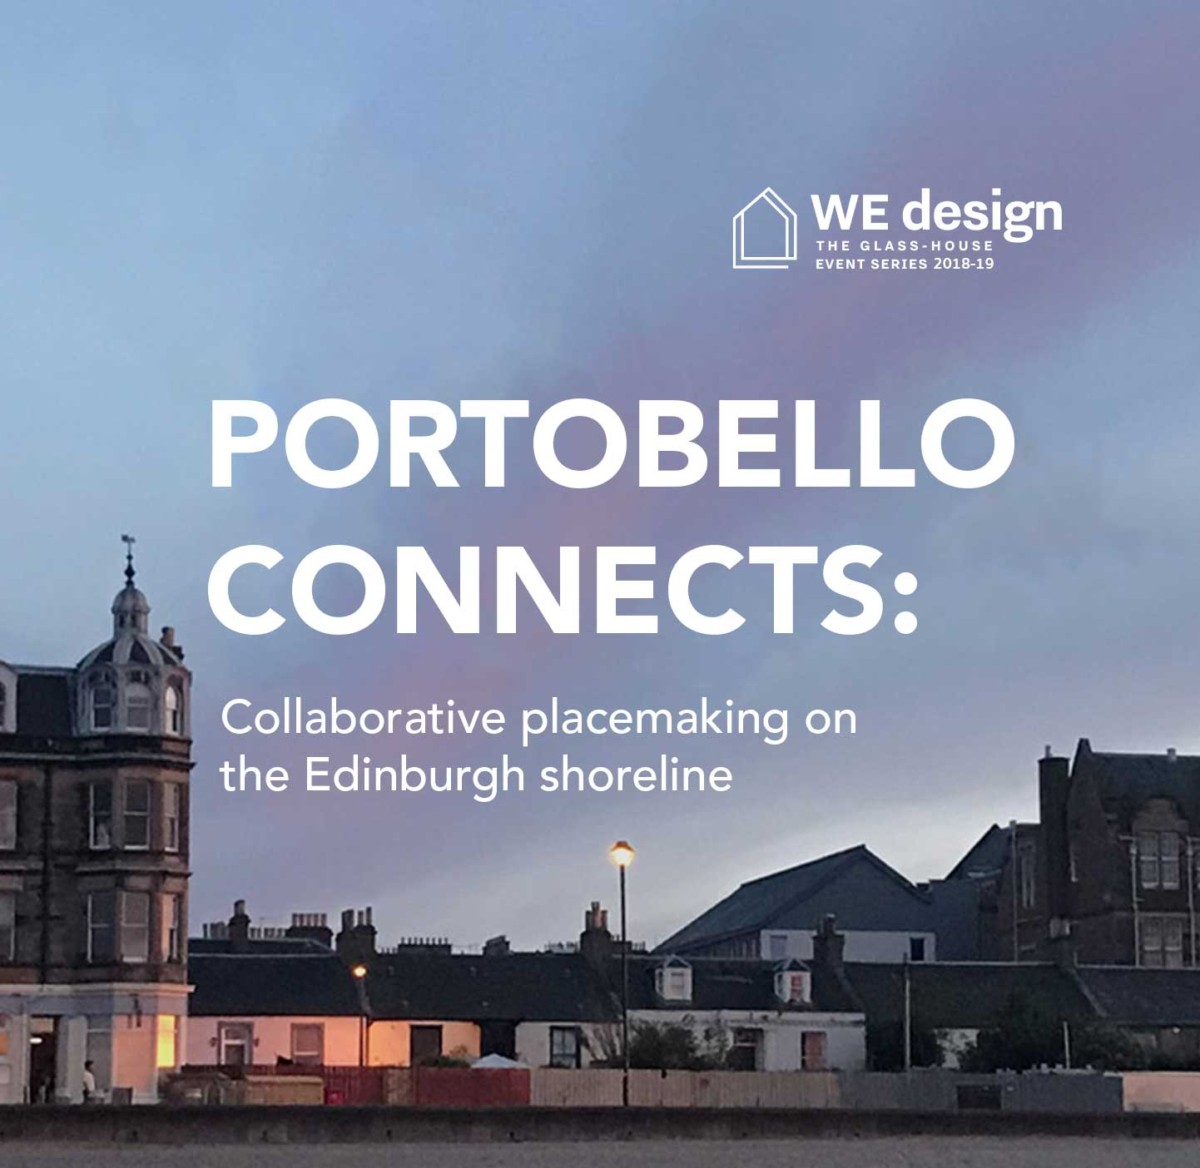 Portobello connects: collaborative placemaking on the Edinburgh shoreline